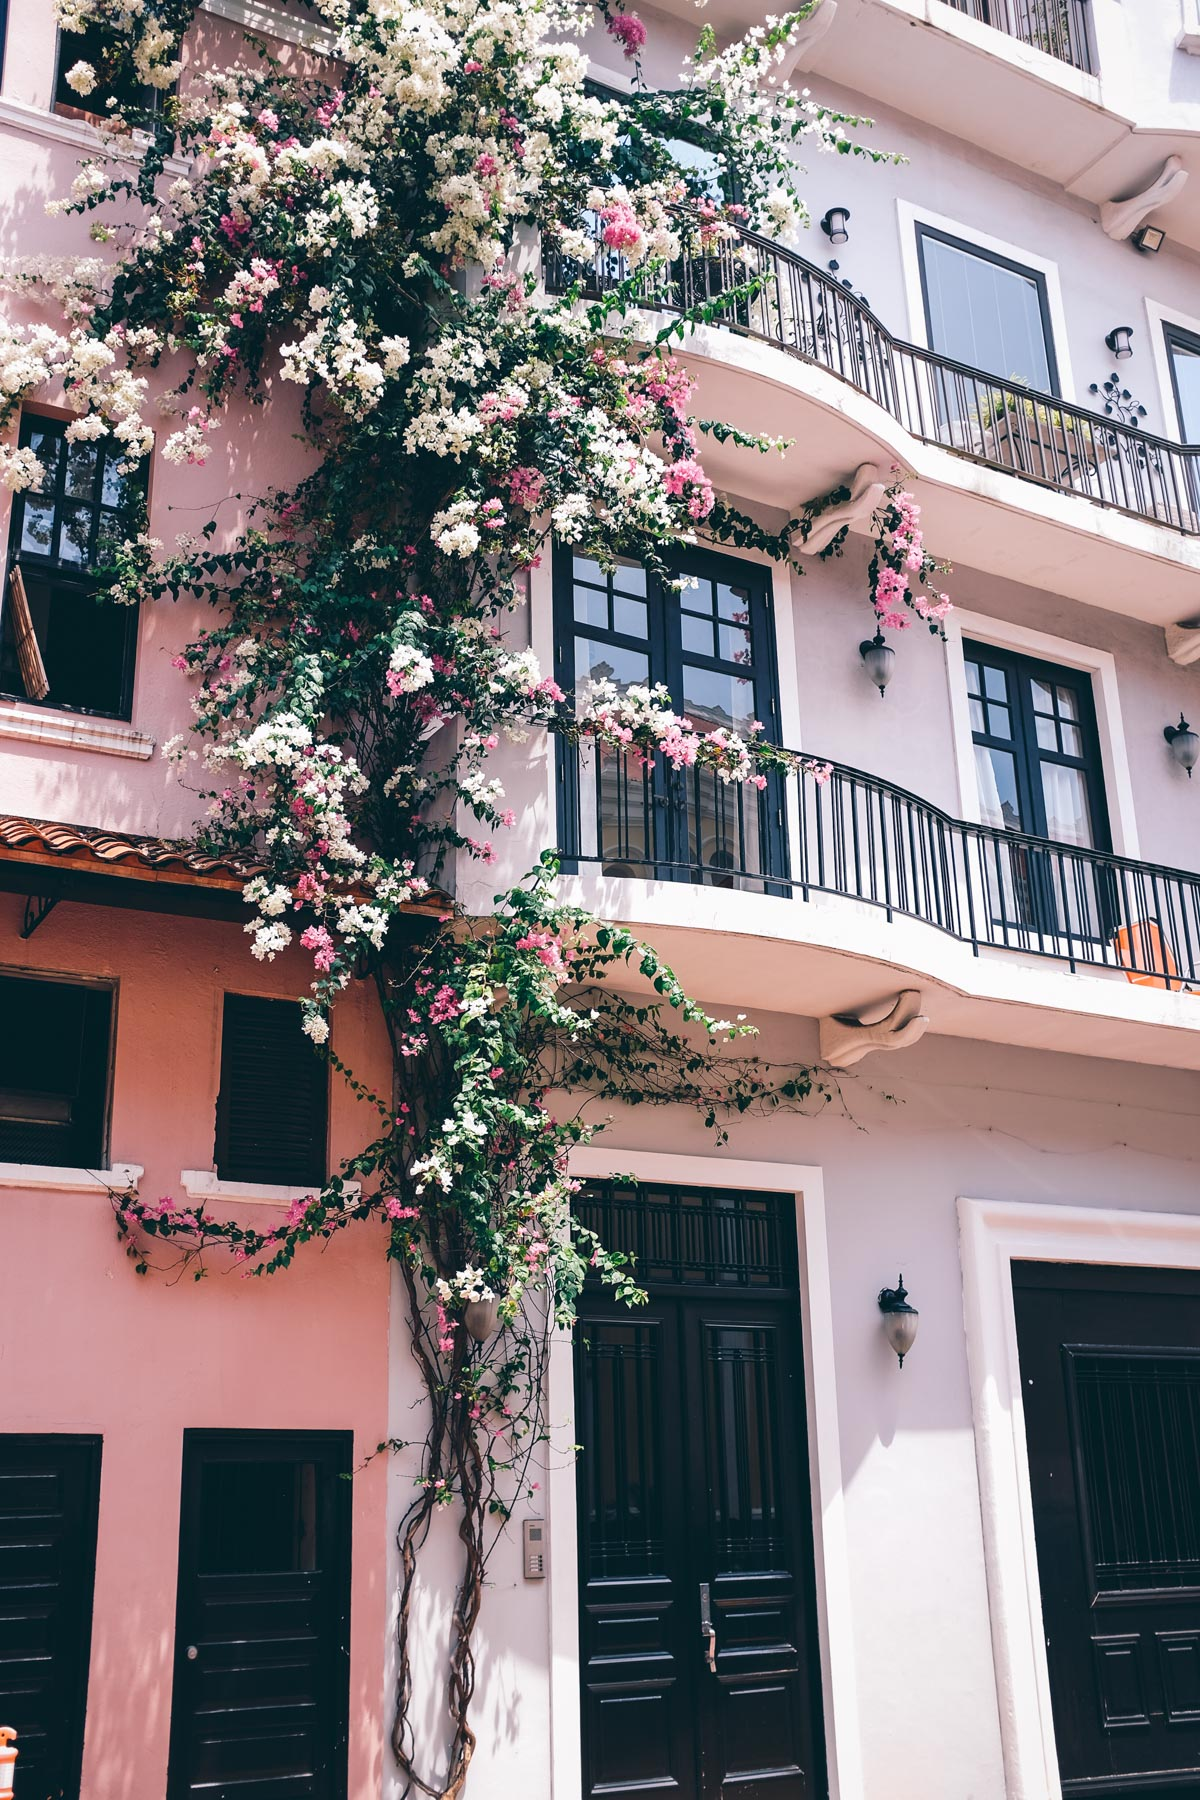 Jess Ann Kirby grabs a photo of the beautiful flowers on building fronts in Casco Viejo, Panama City